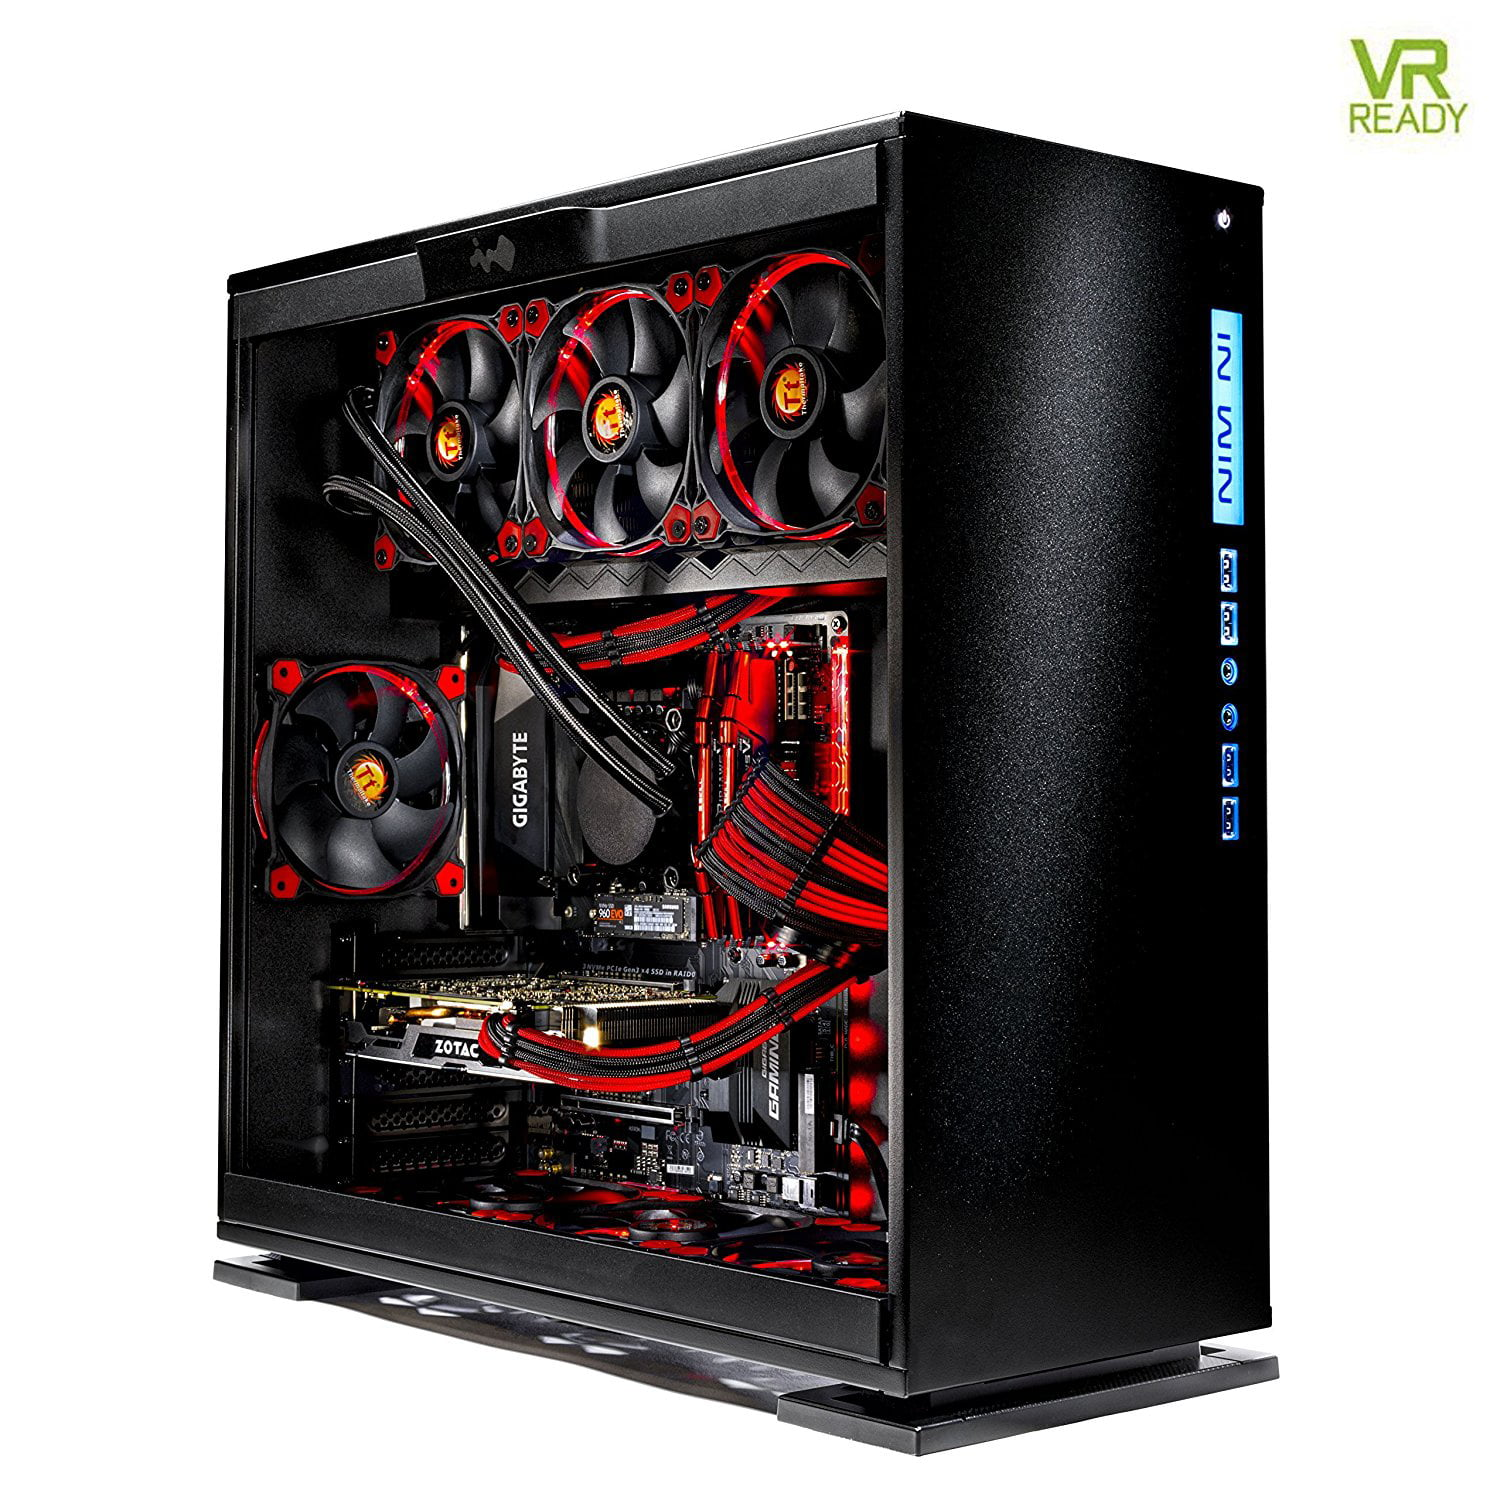 SkyTech Legacy - Gaming Computer PC Desktop - i7-7700K 4 2Ghz, 500GB  Samsung 960 Evo NVMe SSD, GTX 1080 Ti 11GB, 360mm Liquid Cool, 2TB HDD,  16GB